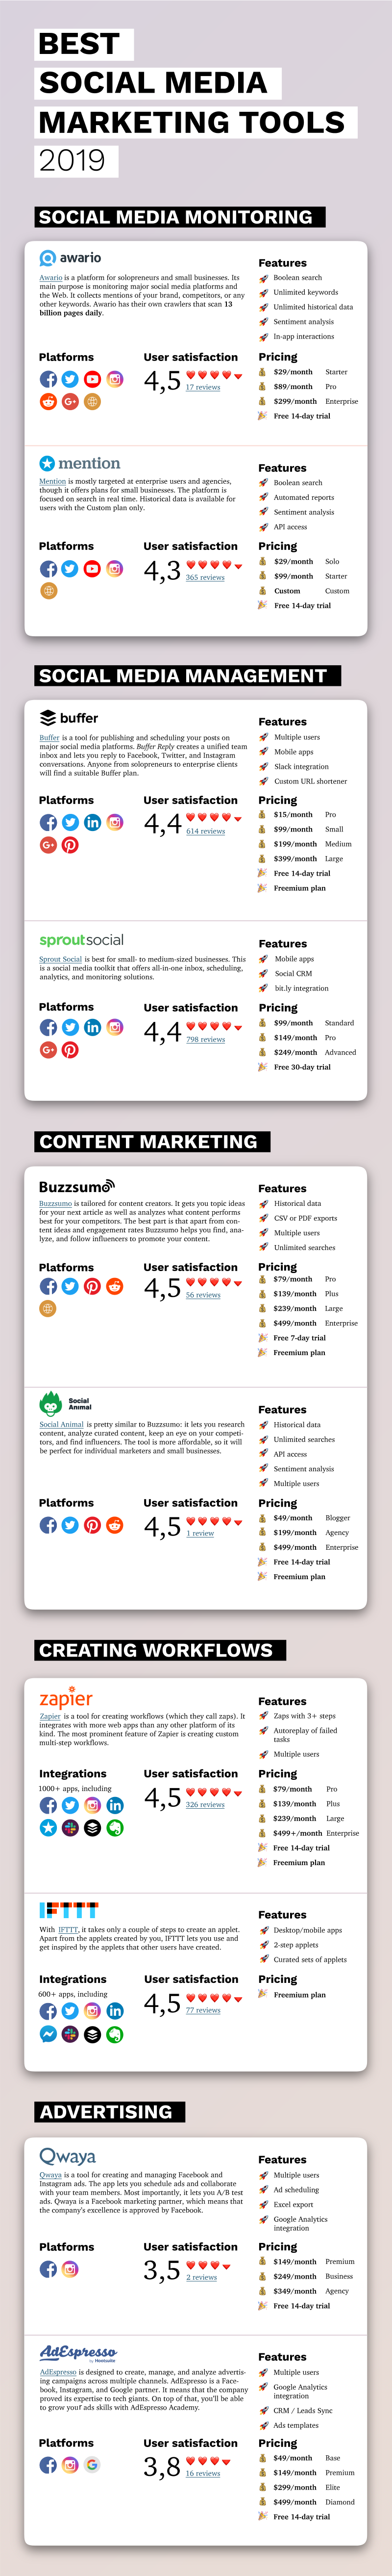 marketing-tools-infographic